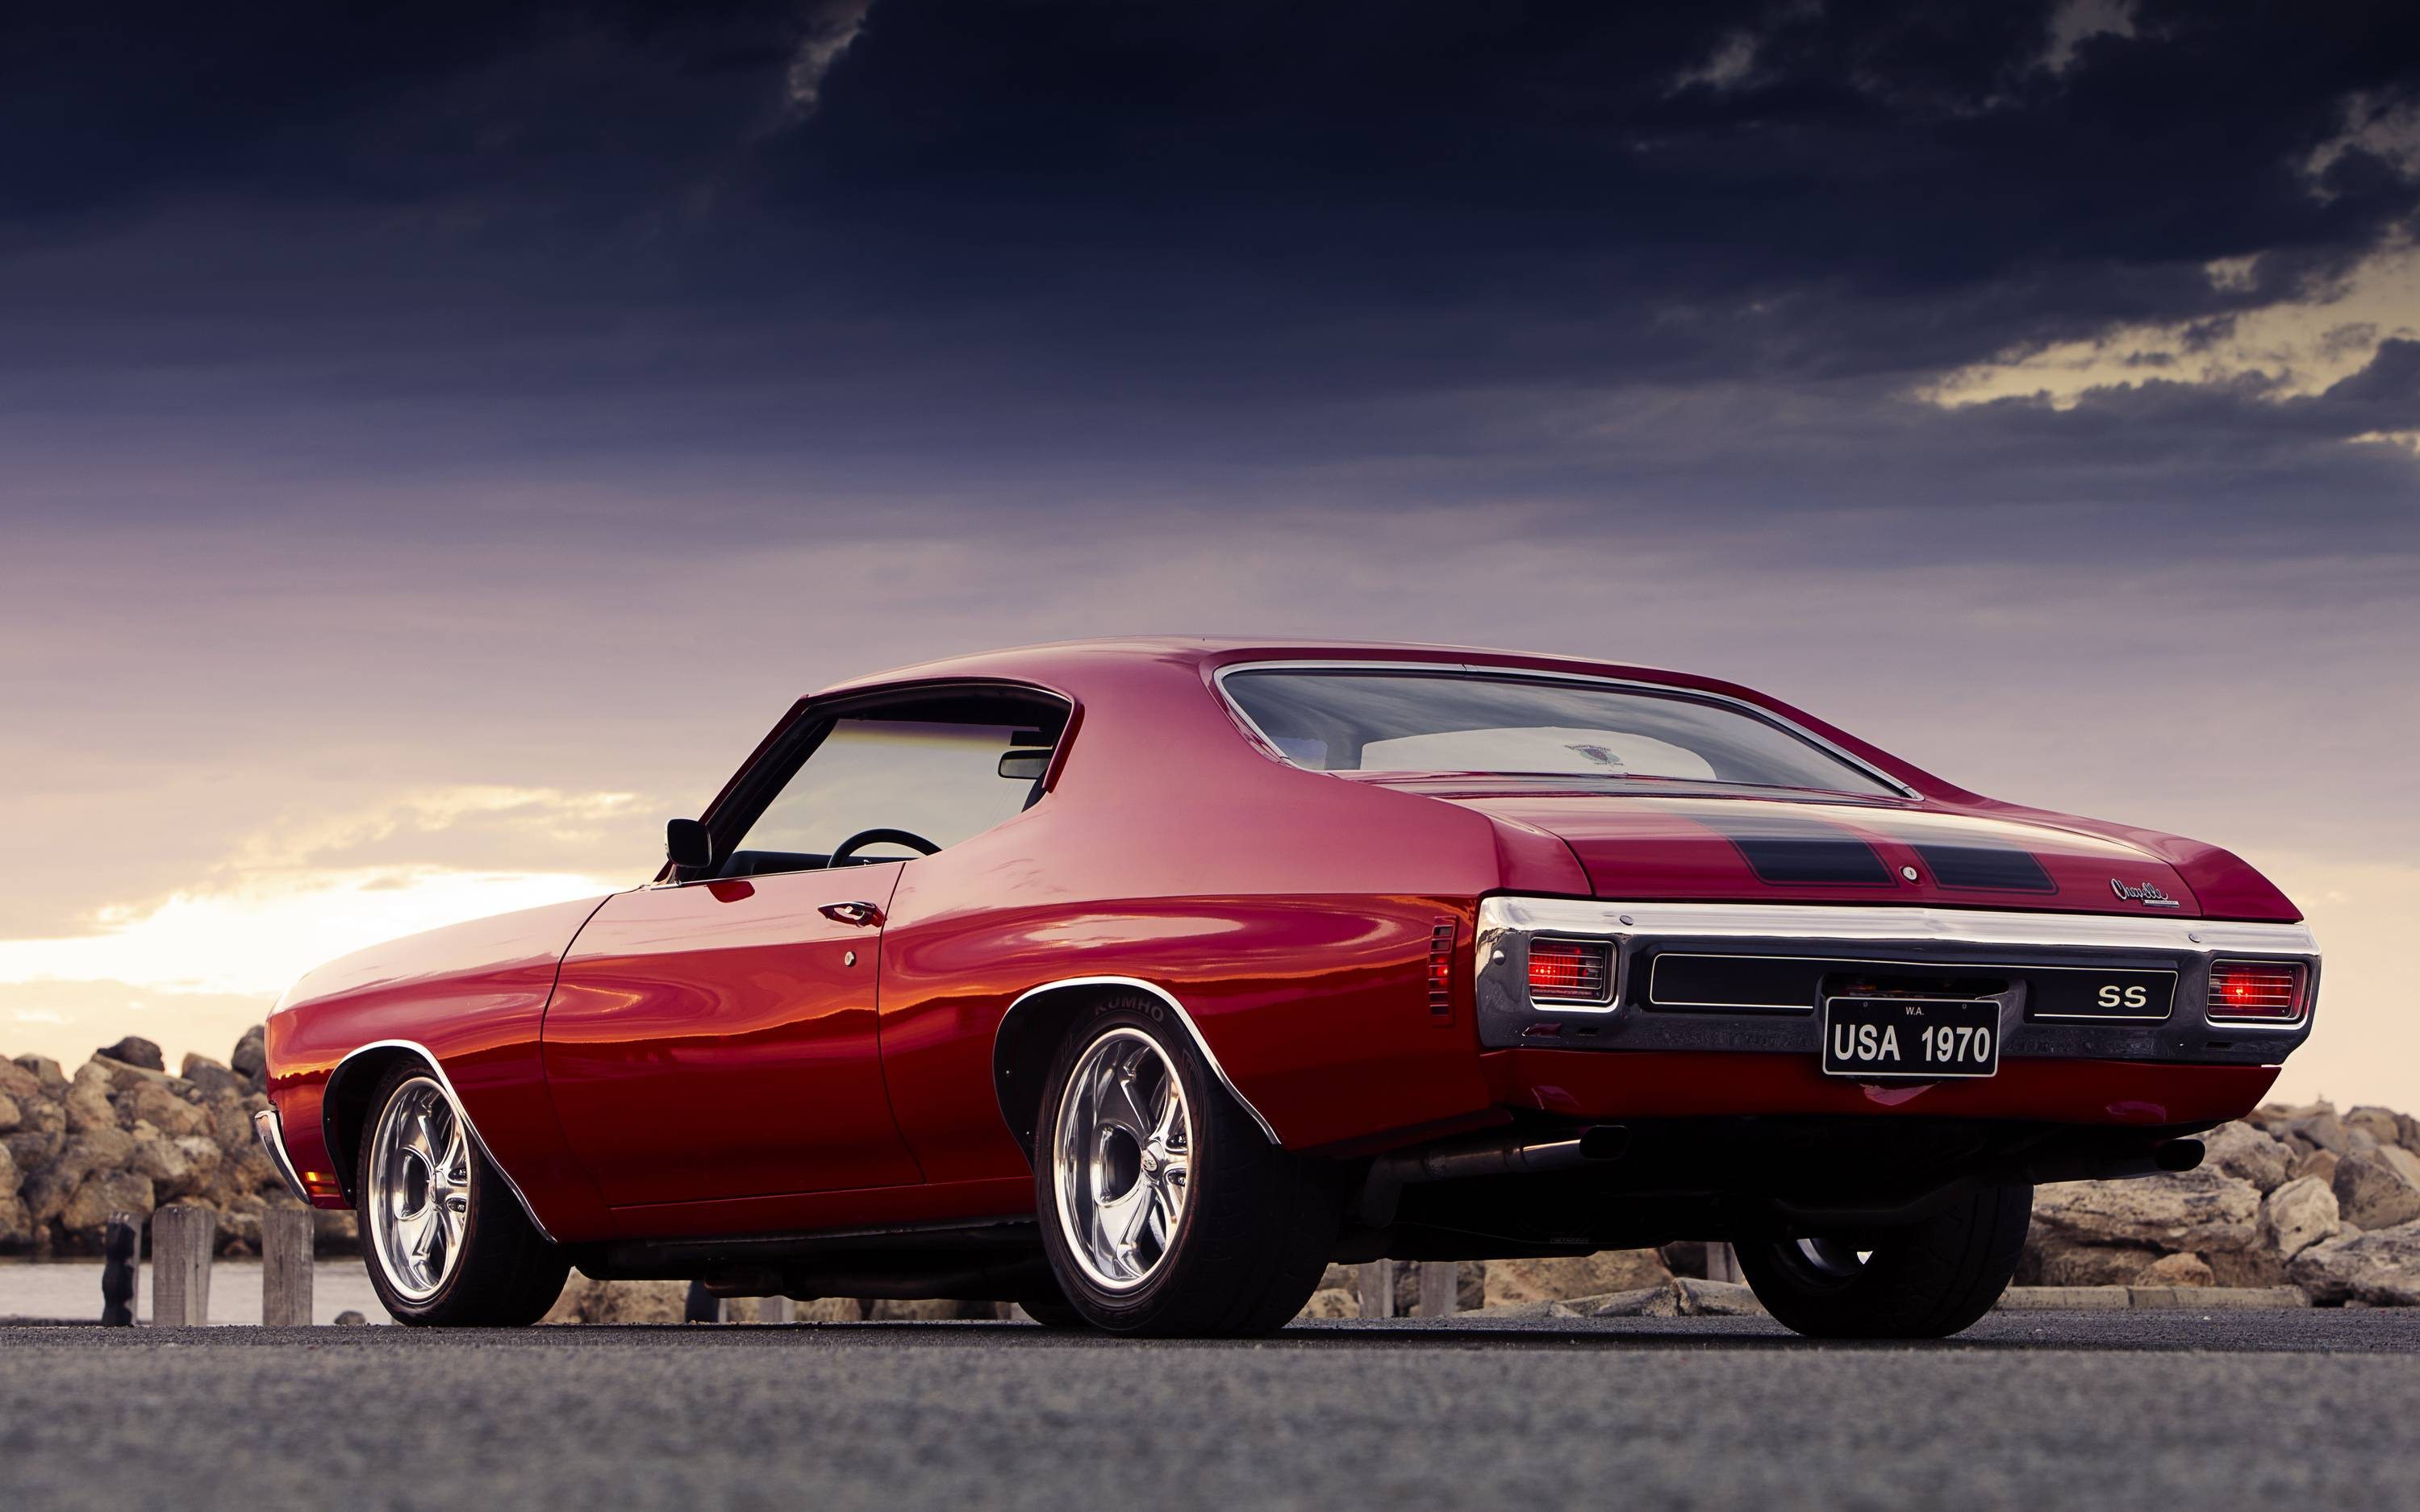 Chevelle Ss Wallpaper Chevelle Ss Wallpapers Wallpaper Cave